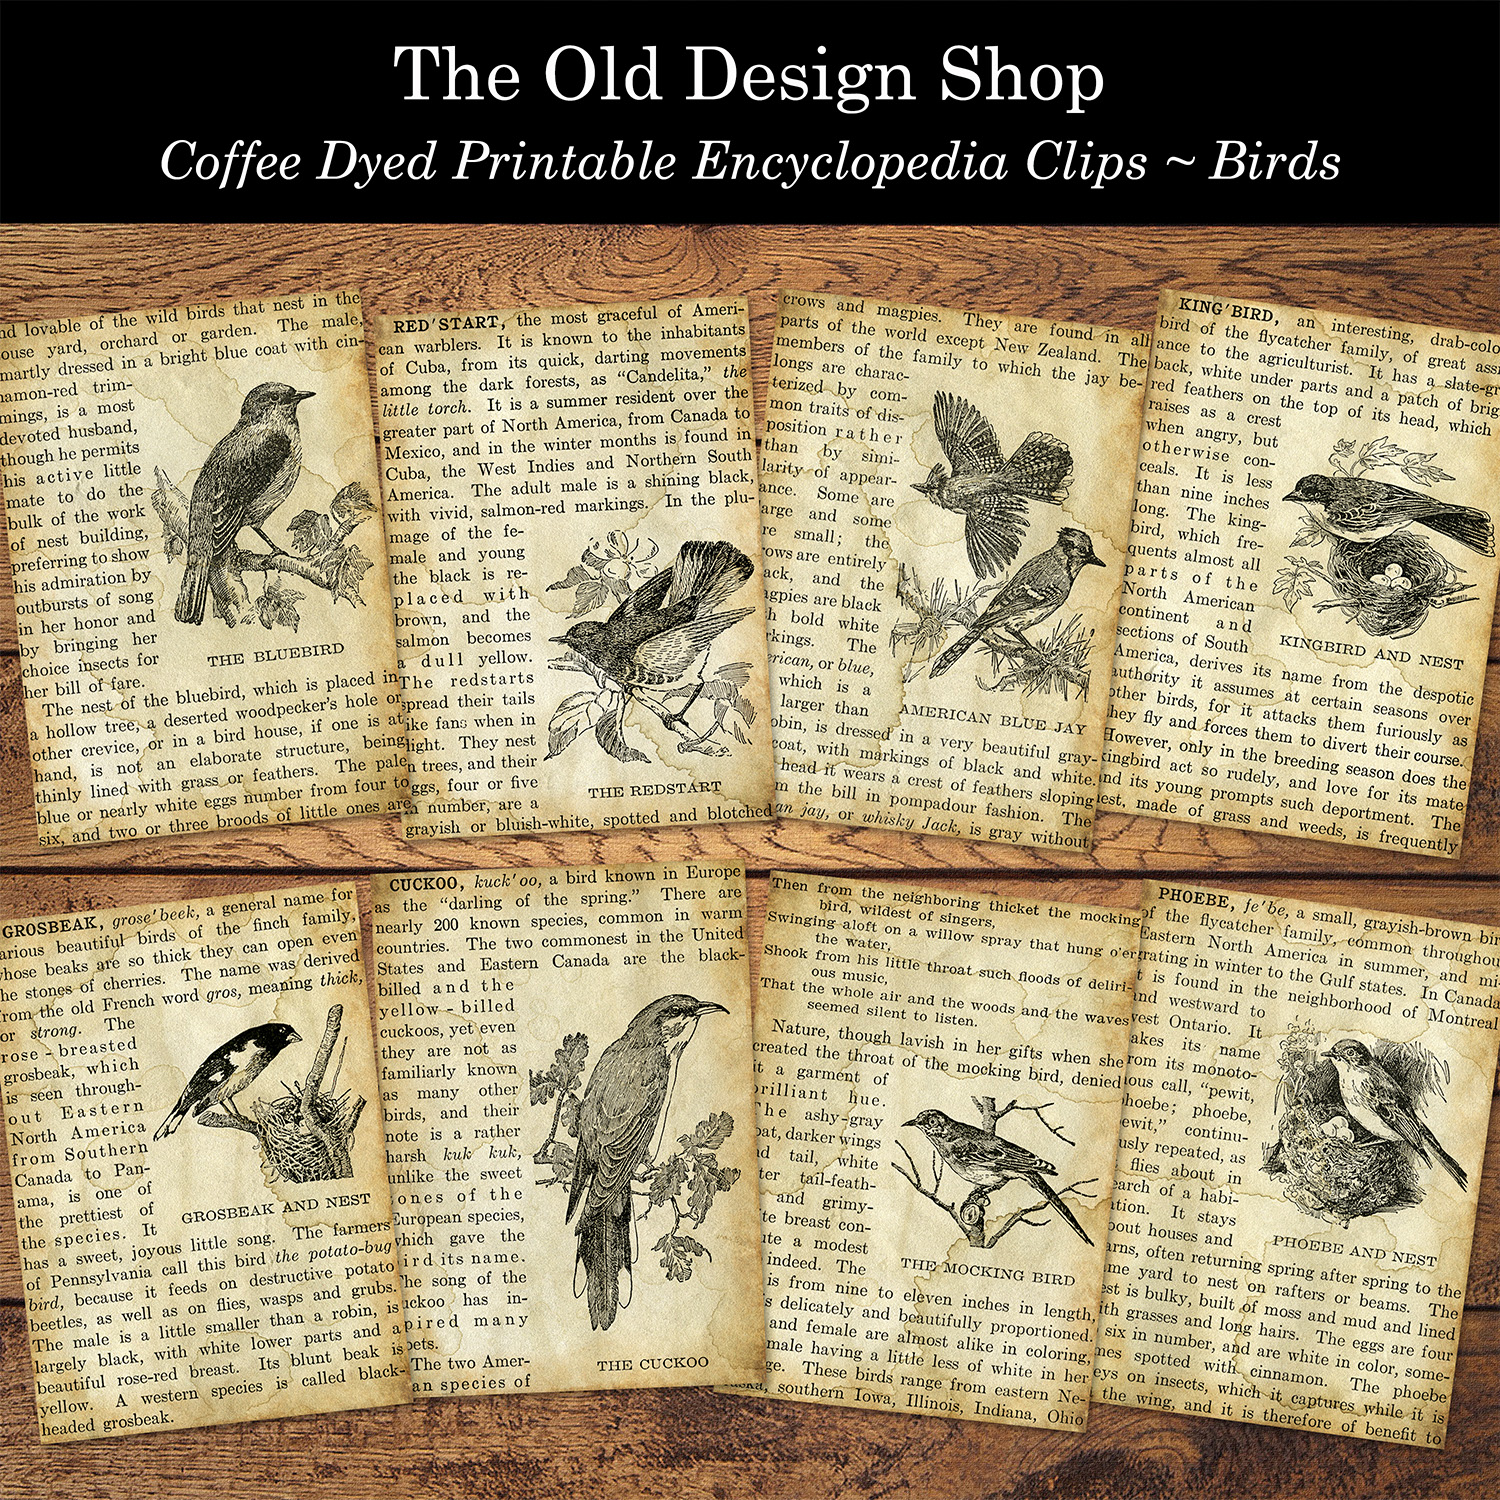 coffee dyed printable encyclopedia clippings ATC size bird cards